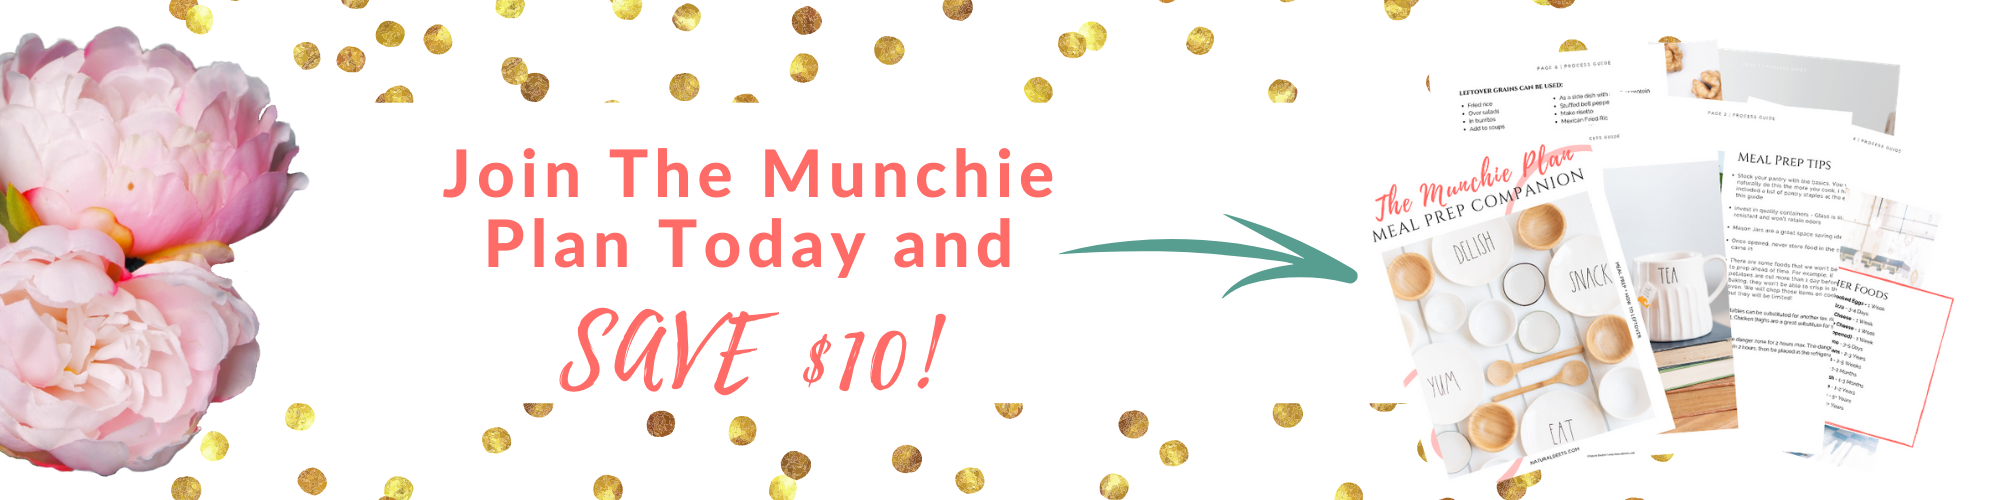 a picture that says join the munchie plan today and save $10